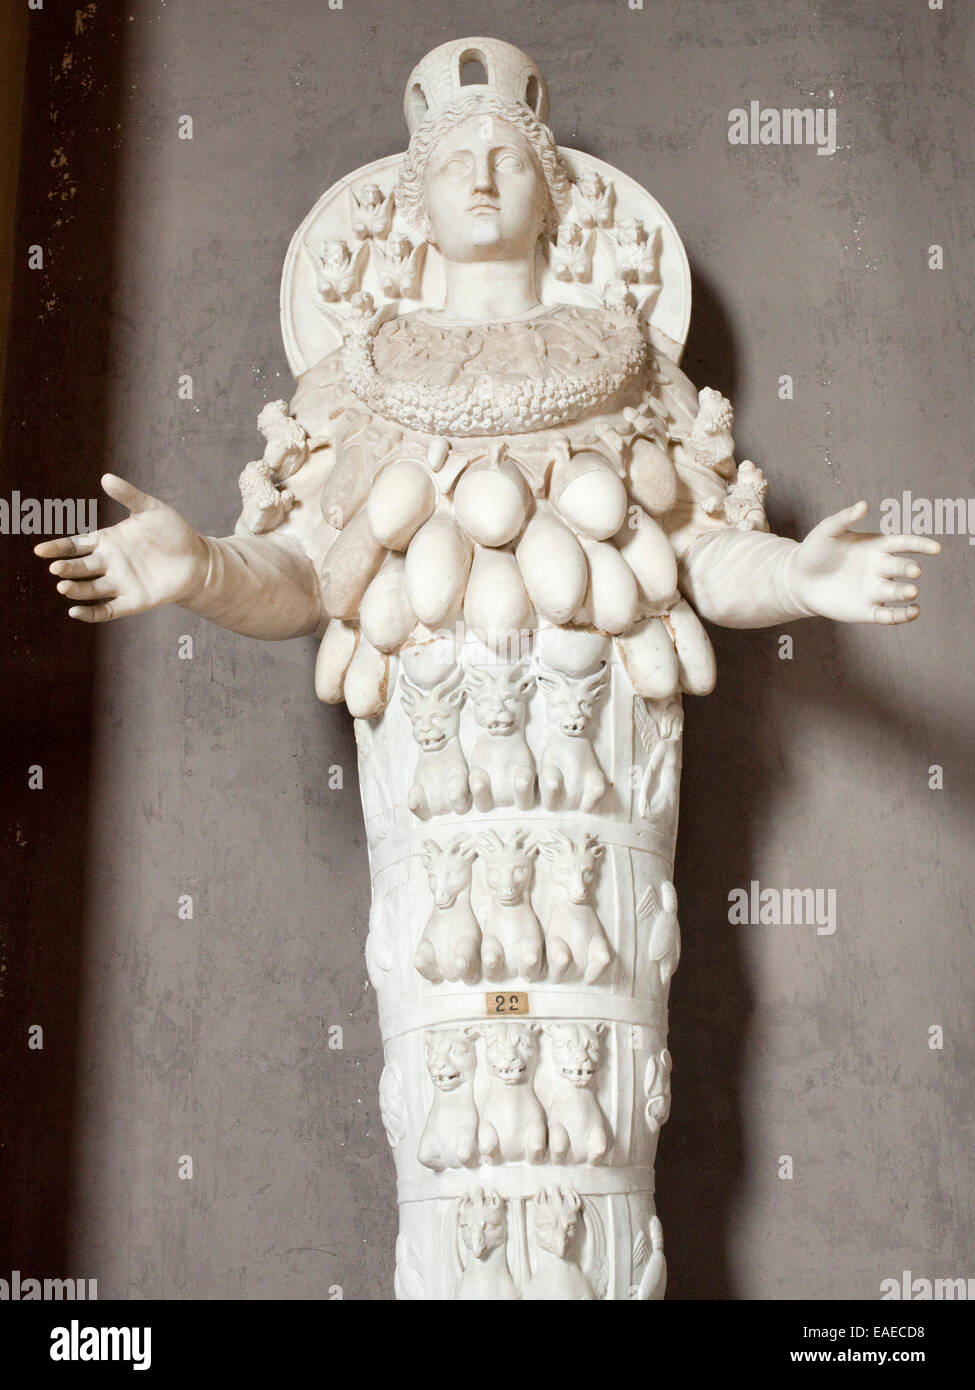 Marble Sculpture of female figure with goat and bull testicle motif in the vatican in Rome, Italy. Stock Photo